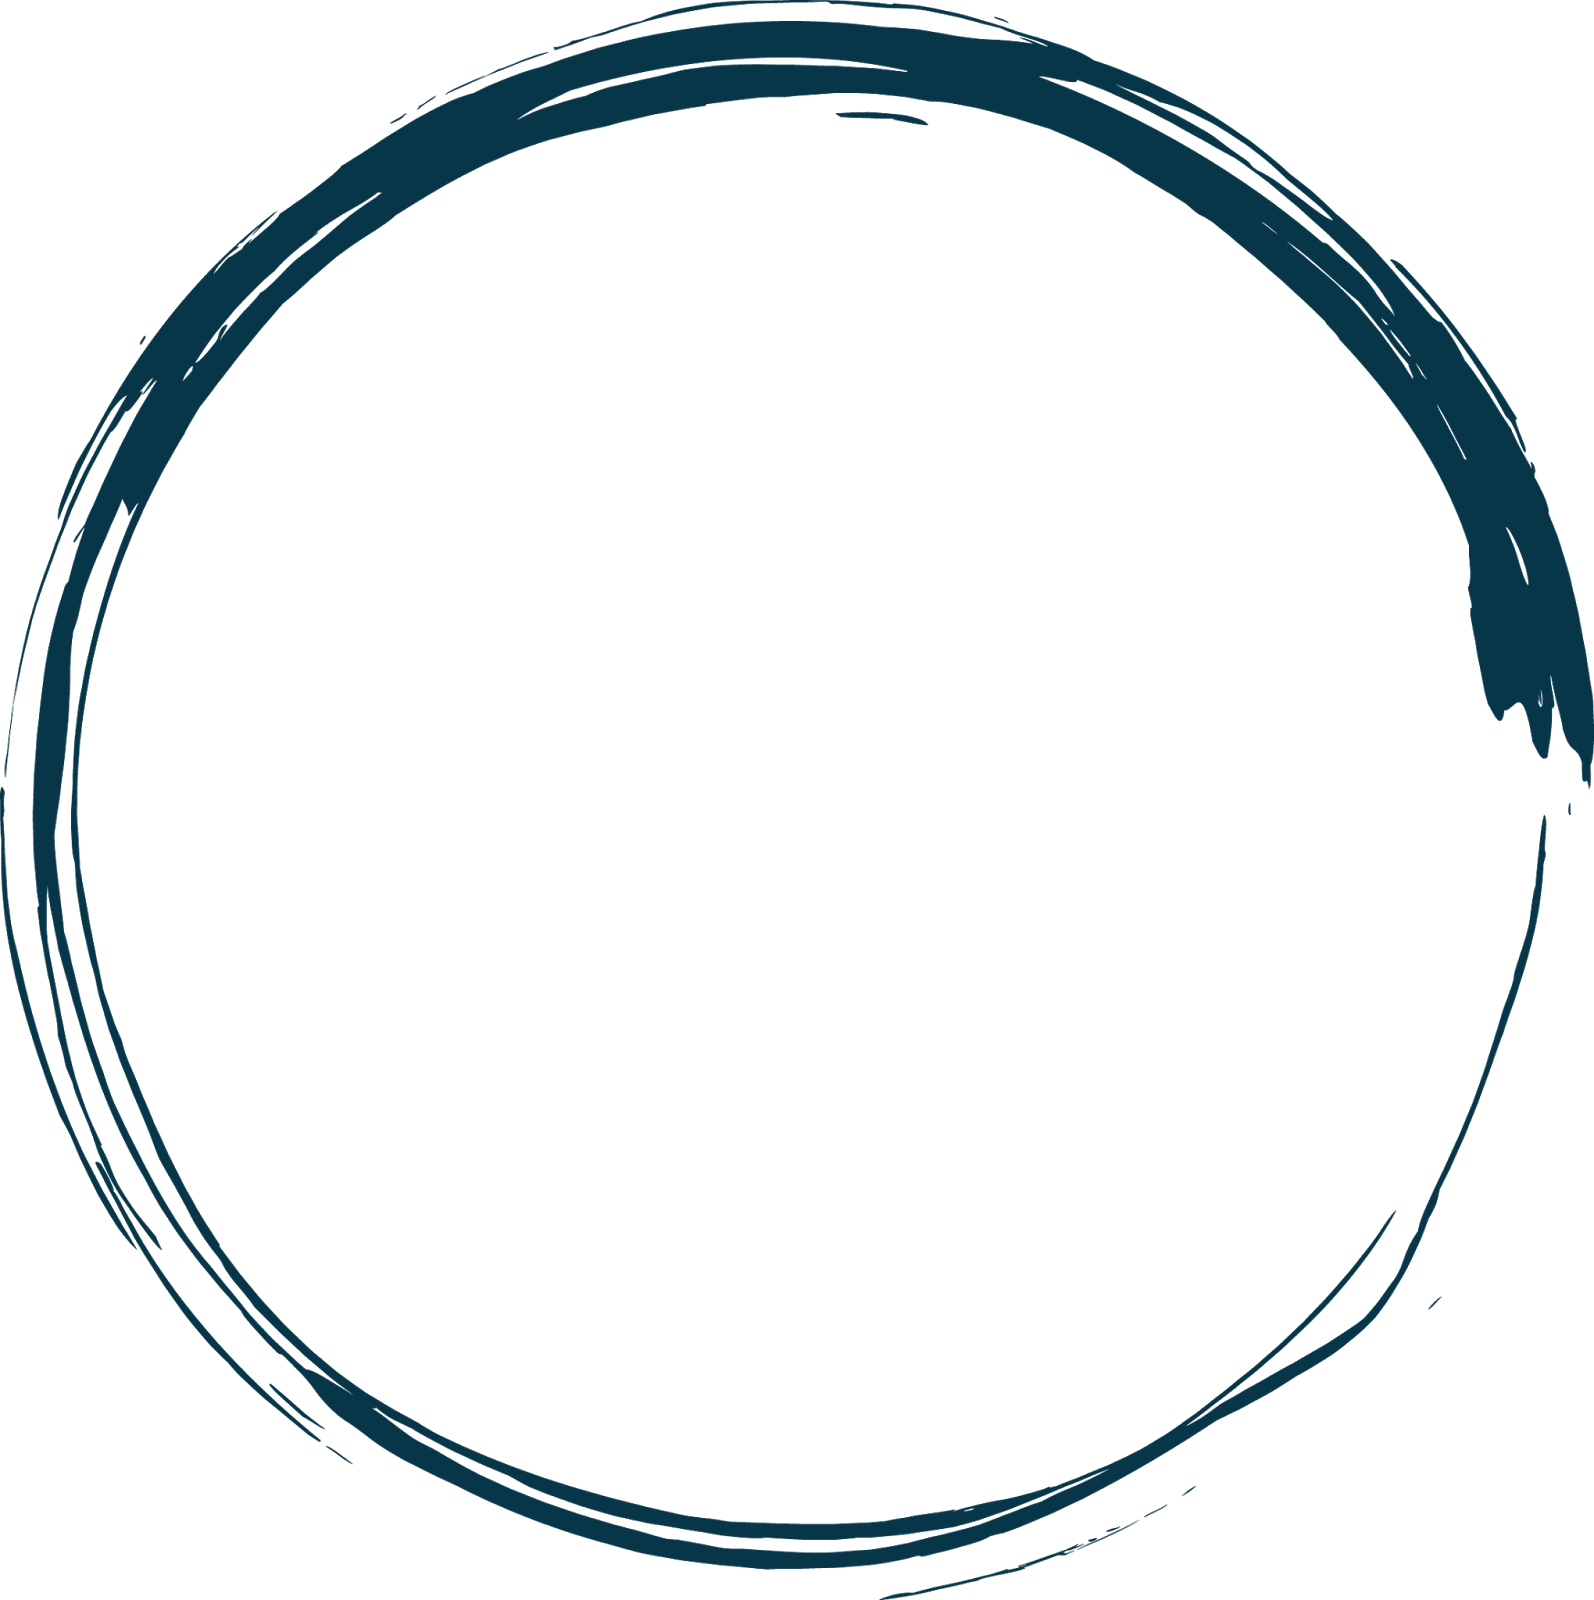 Circle logo png. New for making a